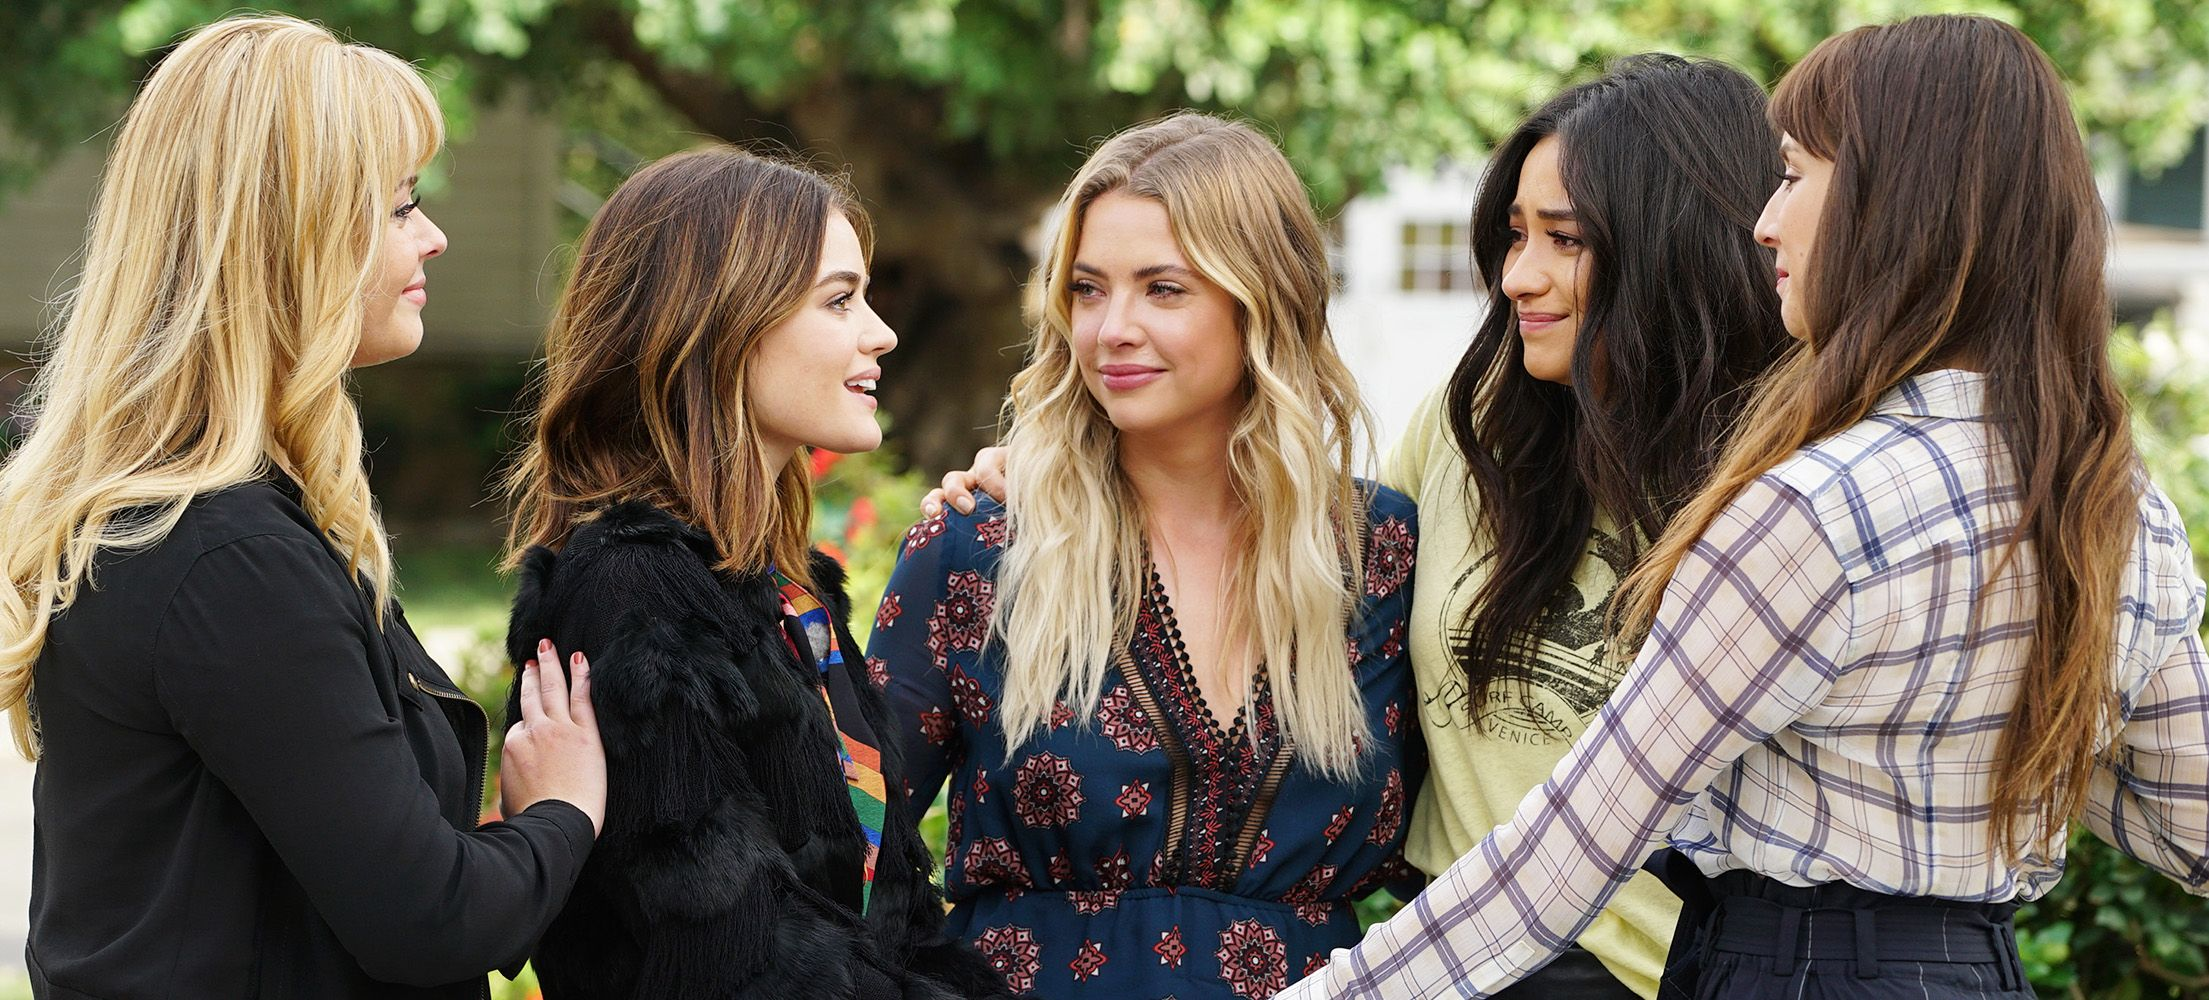 Pretty Little Liars' Cast Members Goodbye Instagrams